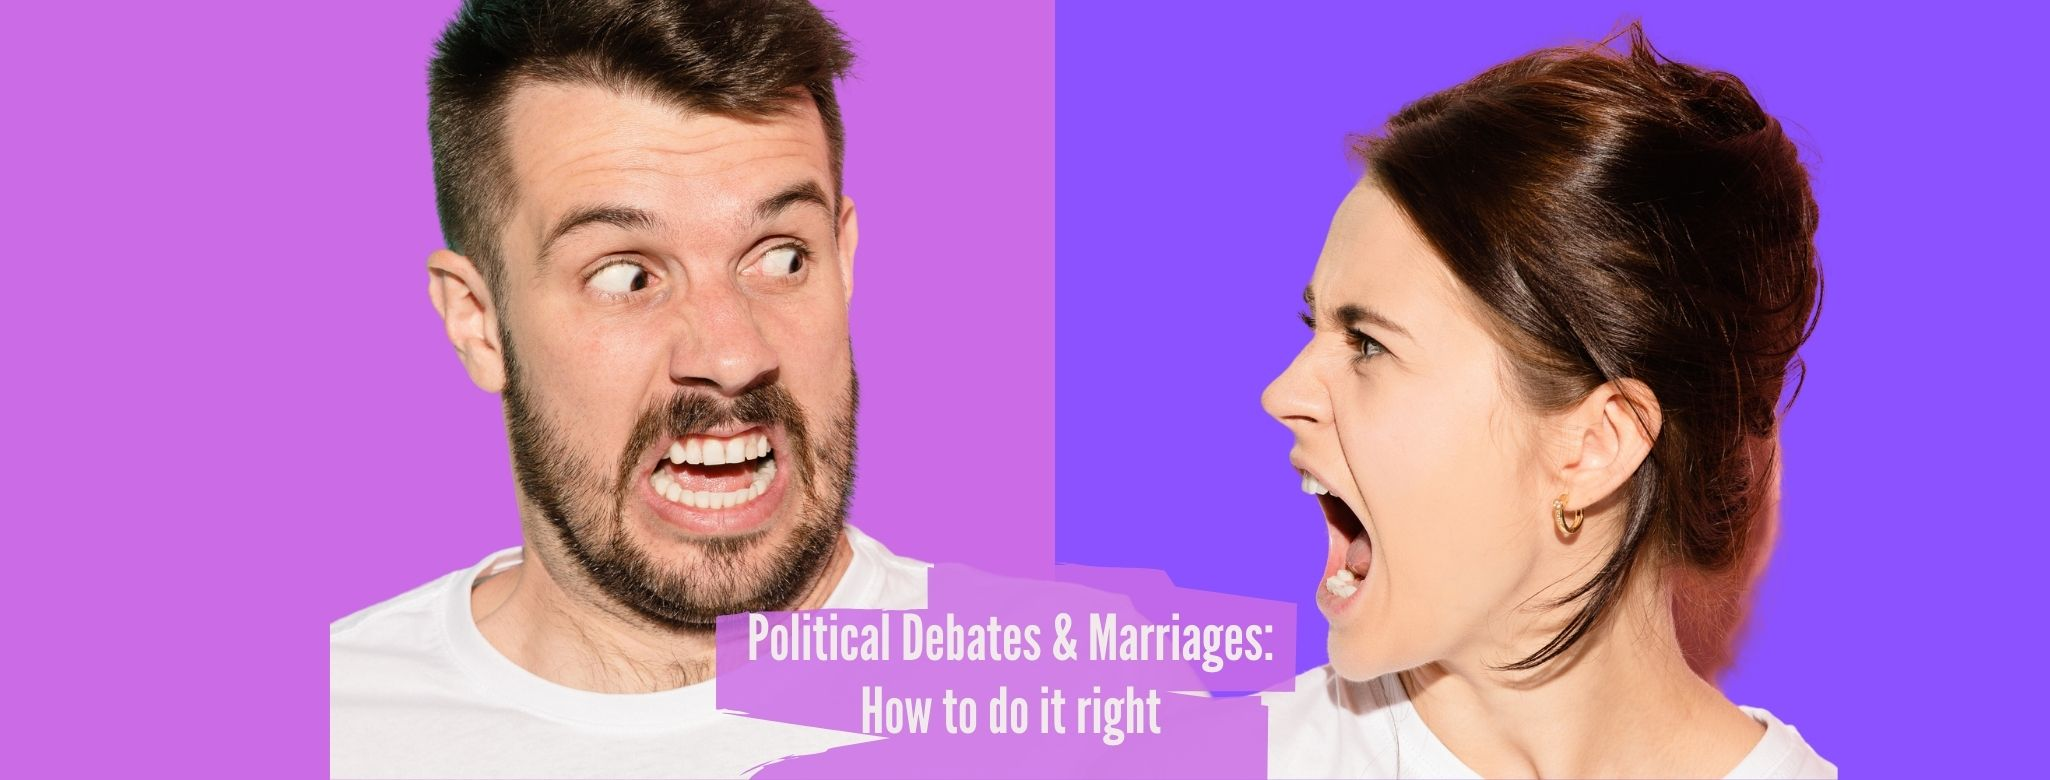 Political Debates and Marriages How to do it right